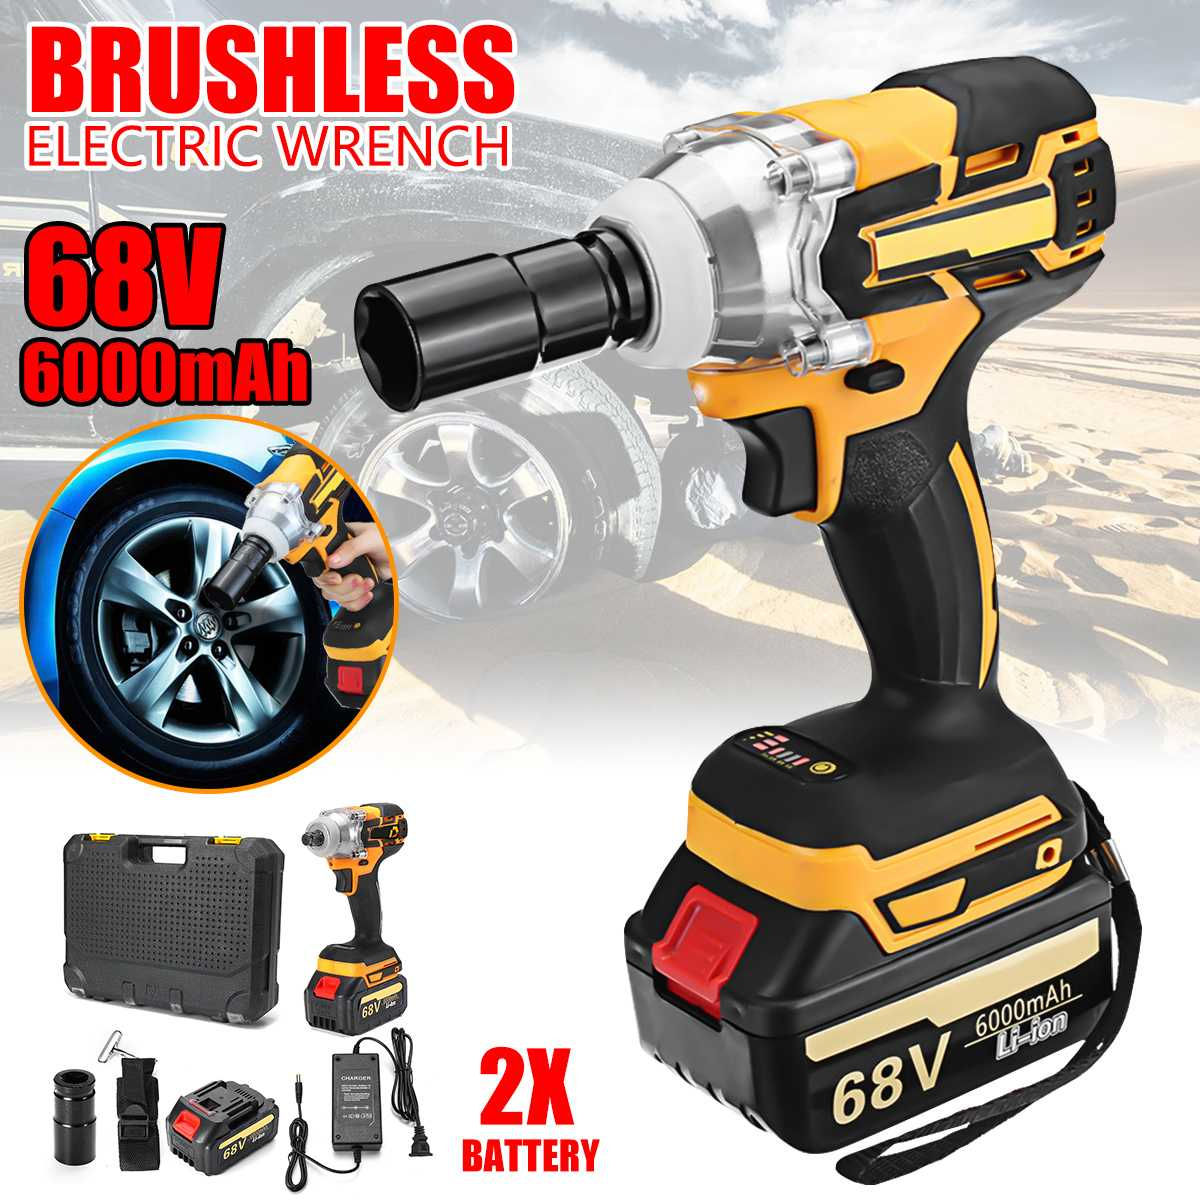 Drillpro Electric Wrench 68V 6000mAh 2 Batteries Brushless Cordless Drive 380 N.M Hand Drill Car Socket Electric Impact Wrench